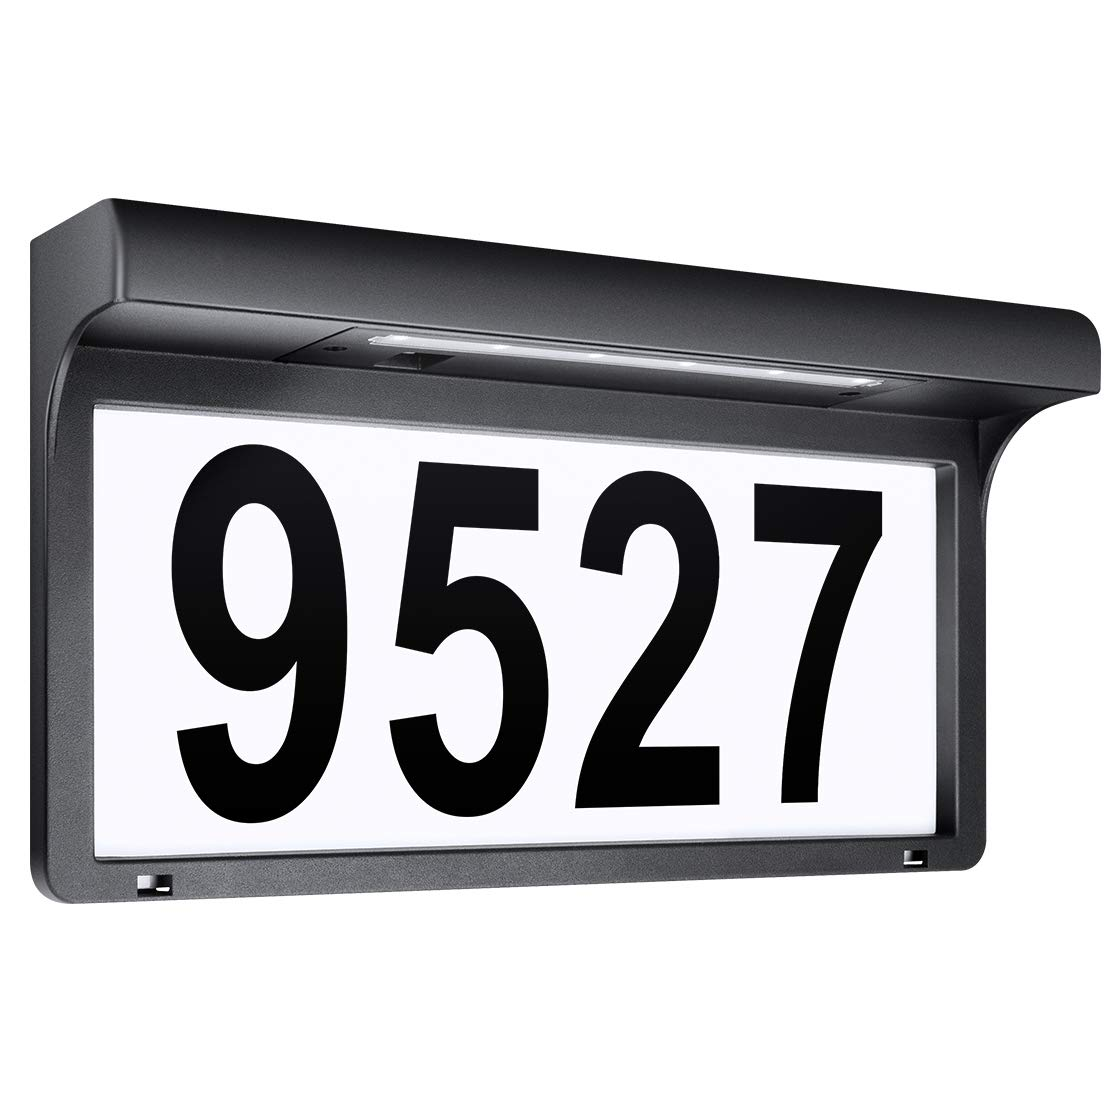 LeiDrail Address Numbers for Houses Solar Powered Address Sign LED Reflective Illuminated House Number Outdoor Lighted Metal Plaque Light Up for Street Yard